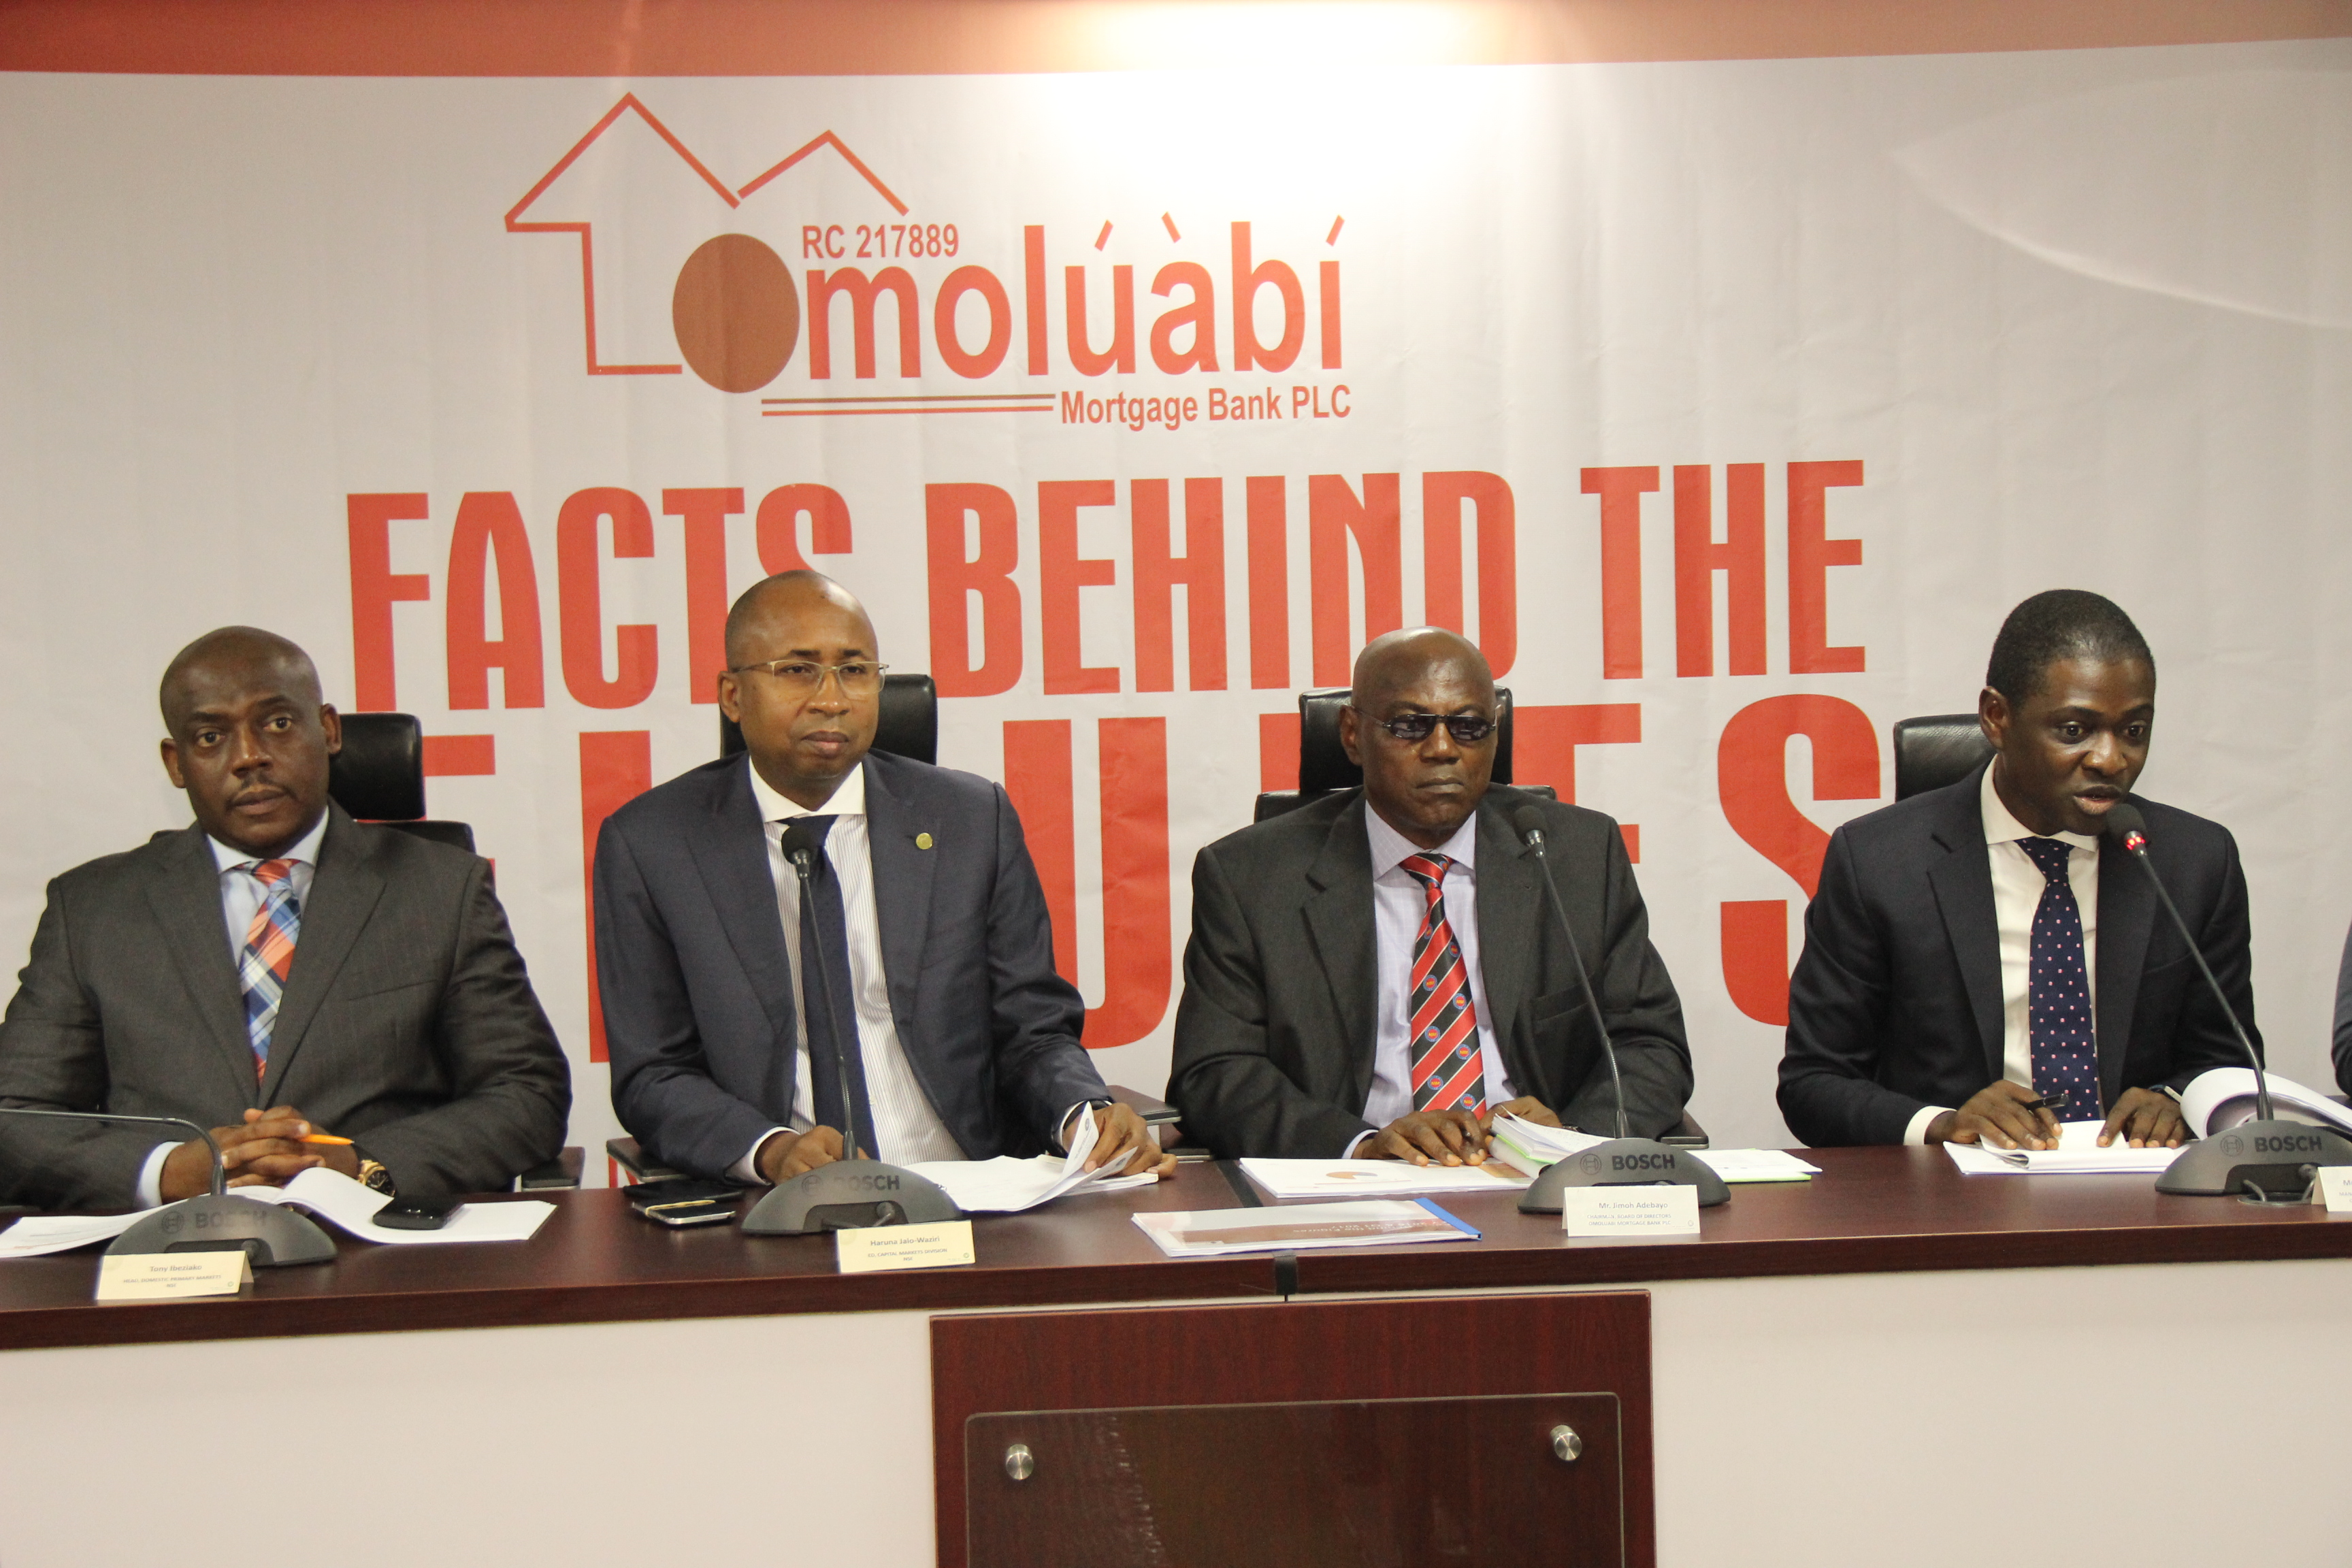 Photo of (Pix) Omoluabi MFB Meets Stock Market Stakeholders, Presents Facts-Behind-Figures